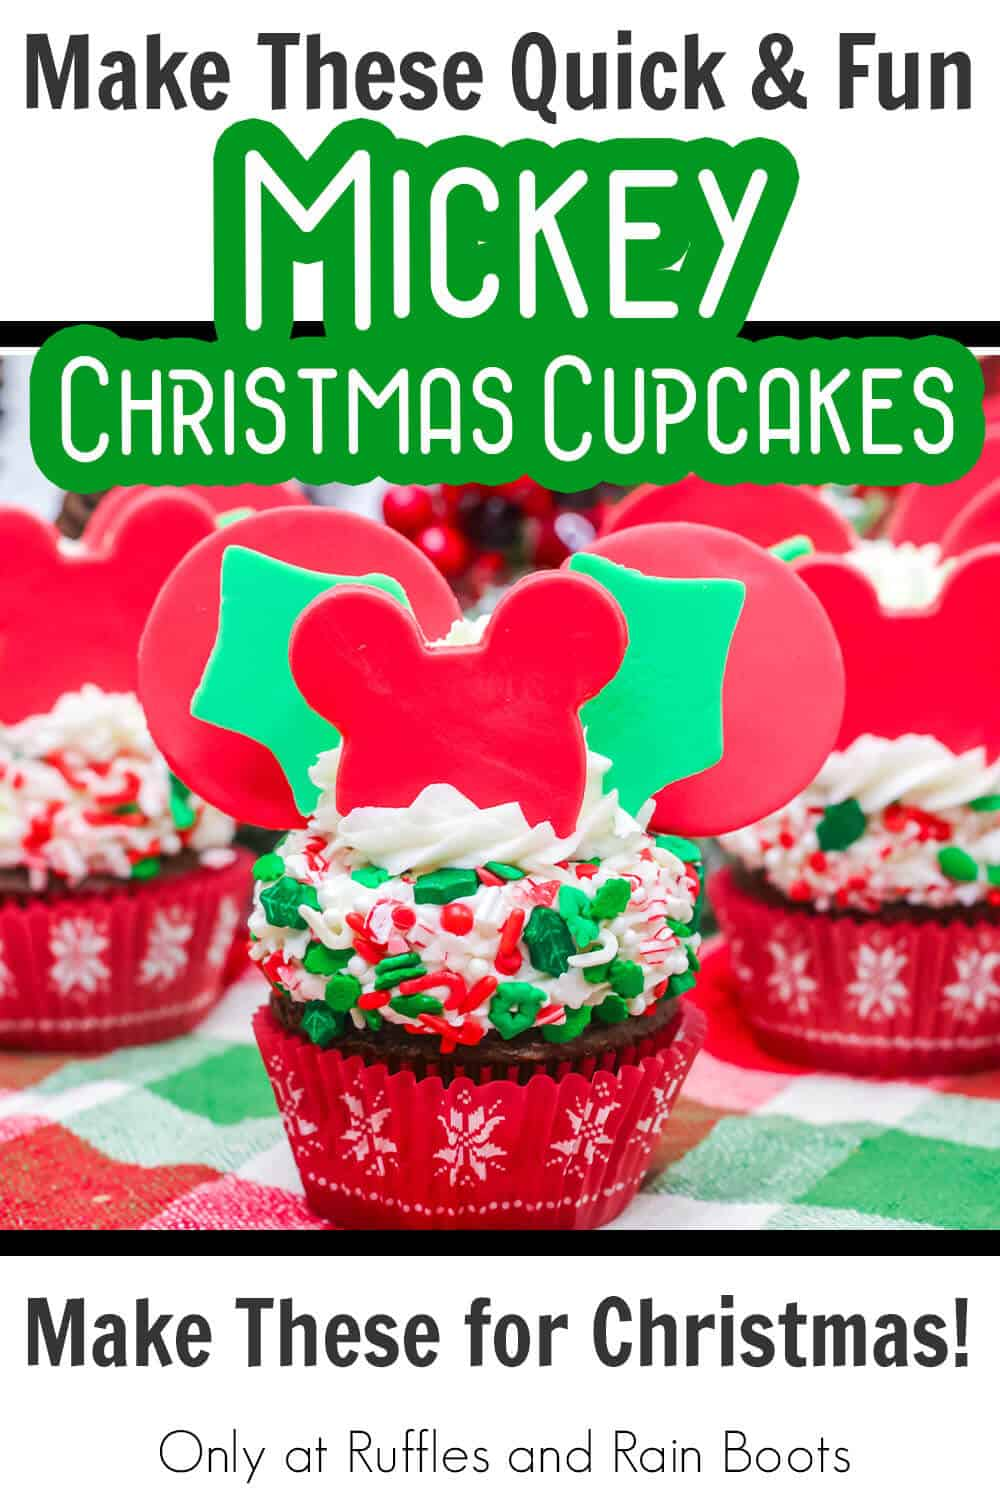 christmas party mickey cupcakes with text which reads make these quick & fun mickey christmas cupcakes make these for Christmas!